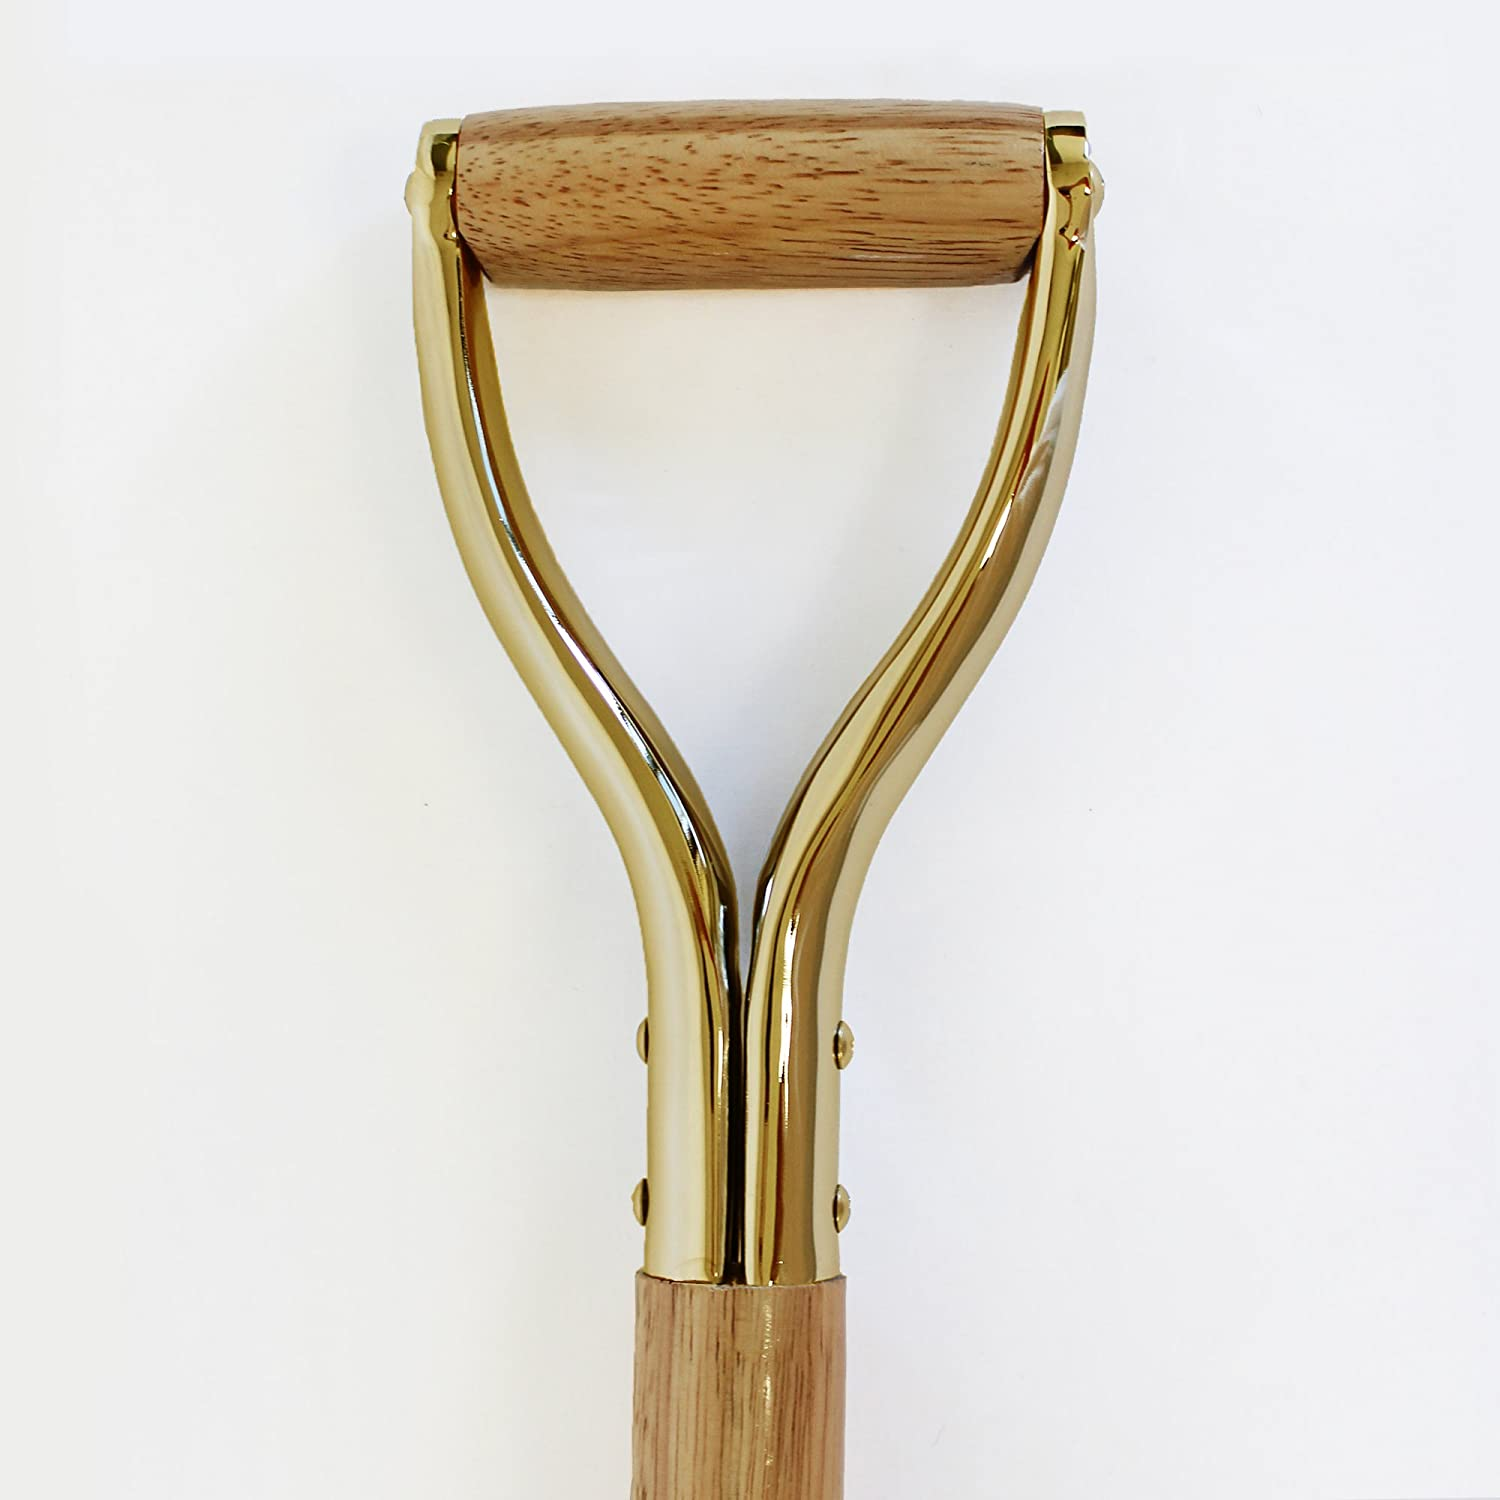 Show Mirror Finish Gold Plated Groundbreaking Ceremonial Shovel with attached Pre-Laser Engraved Plate GROUNDBREAKING 2019